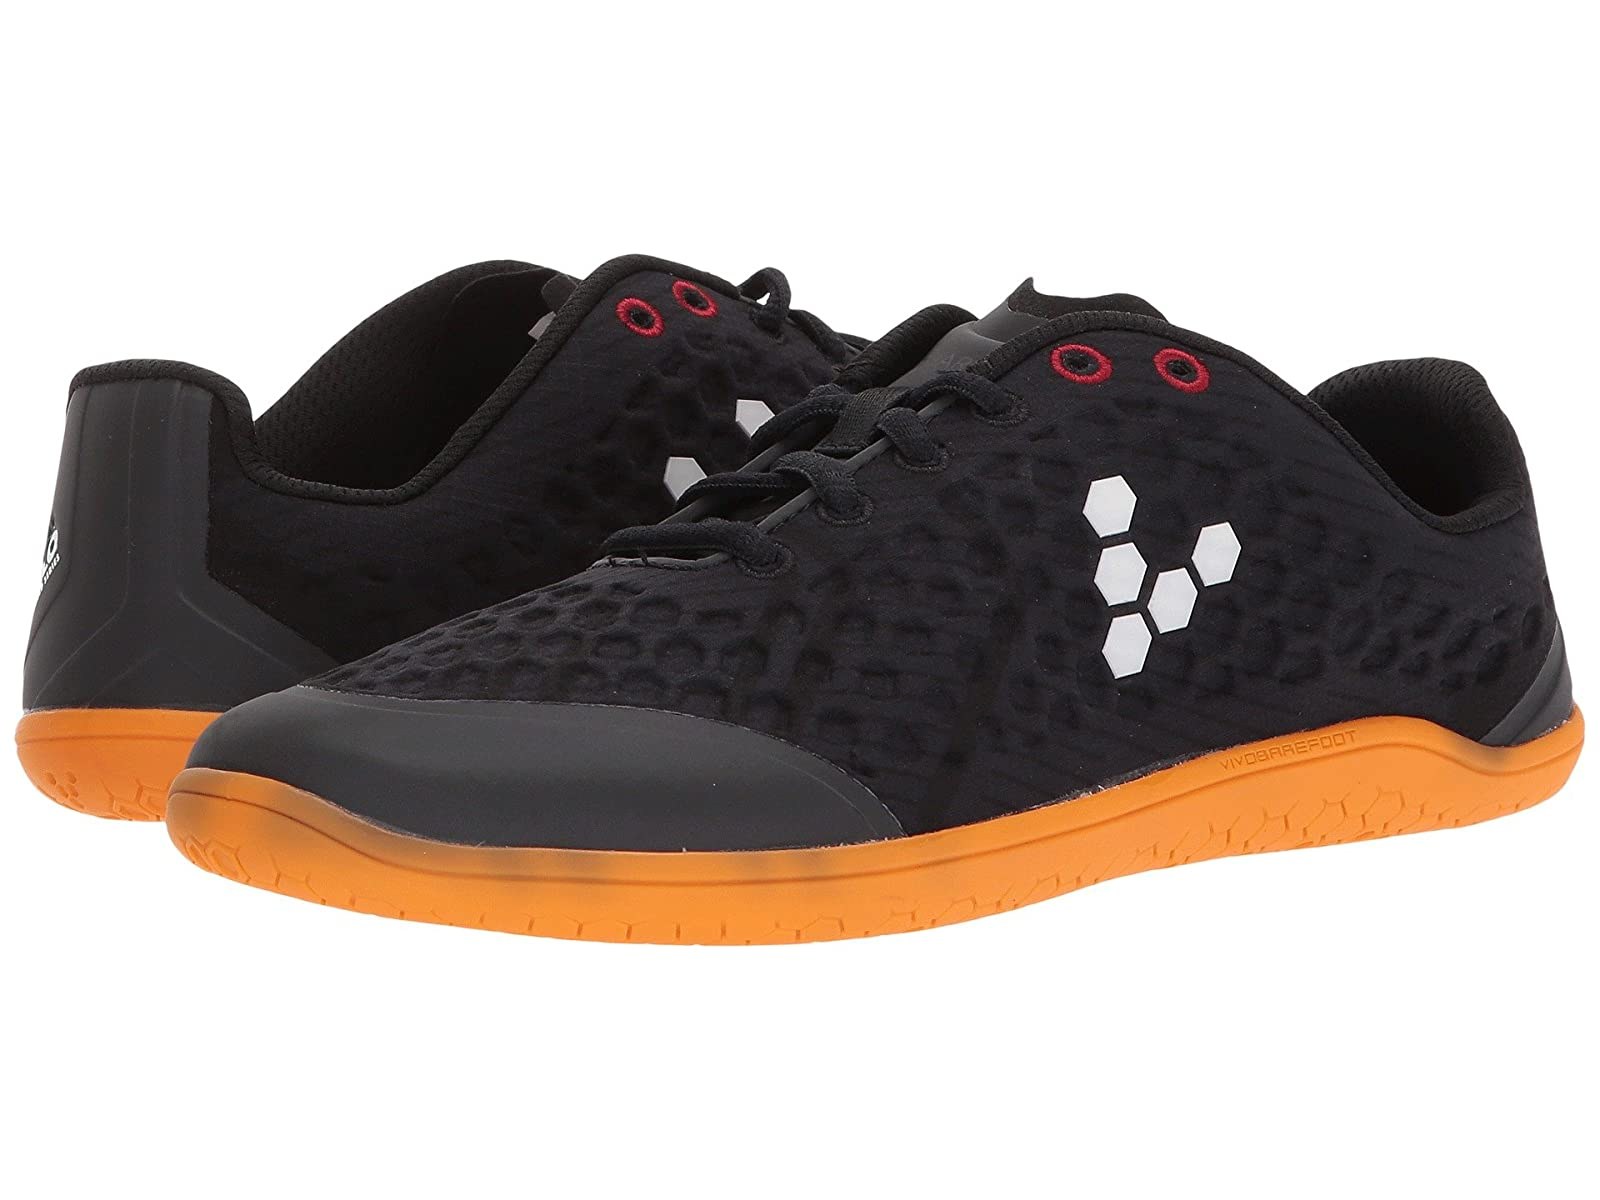 Vivobarefoot Stealth IIAtmospheric grades have affordable shoes